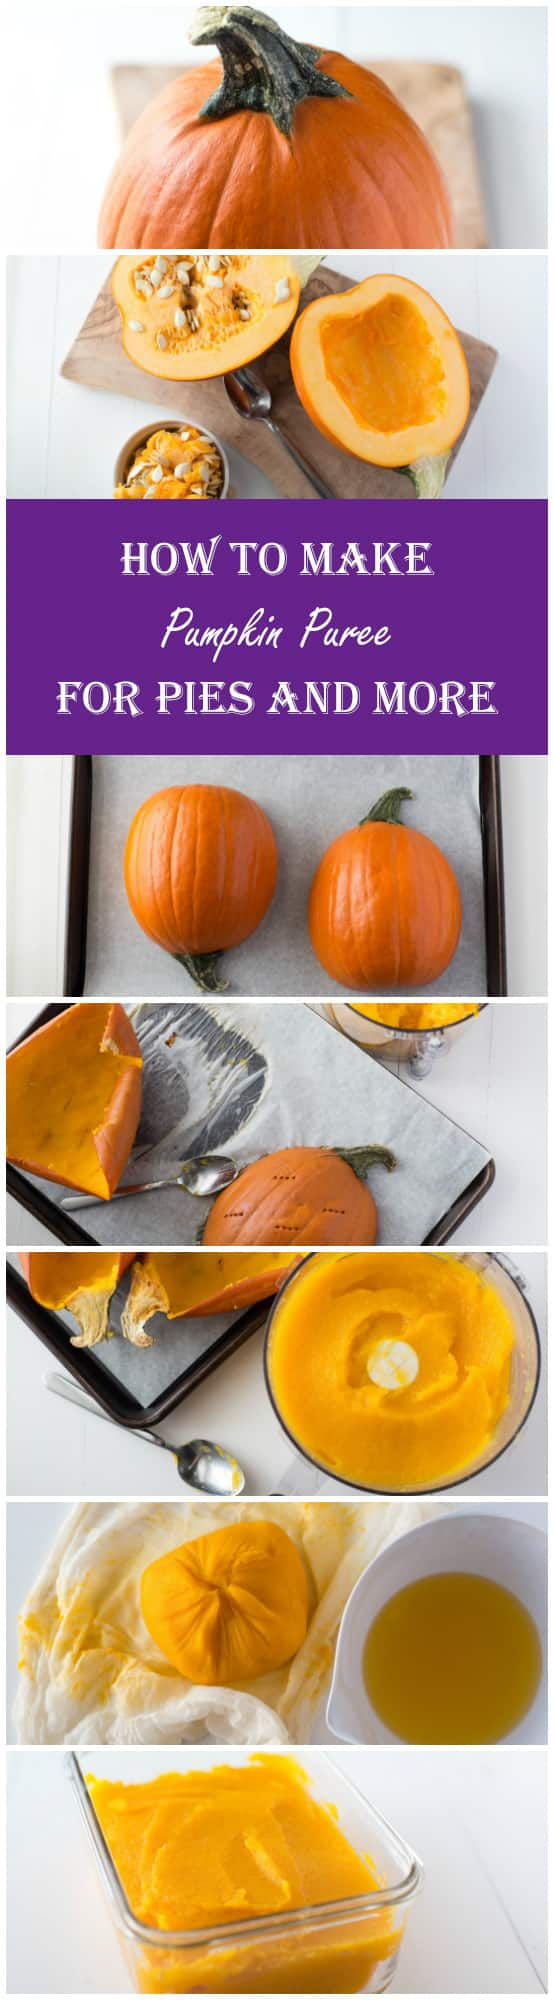 Prepare Your Own Pumpkin for Pie